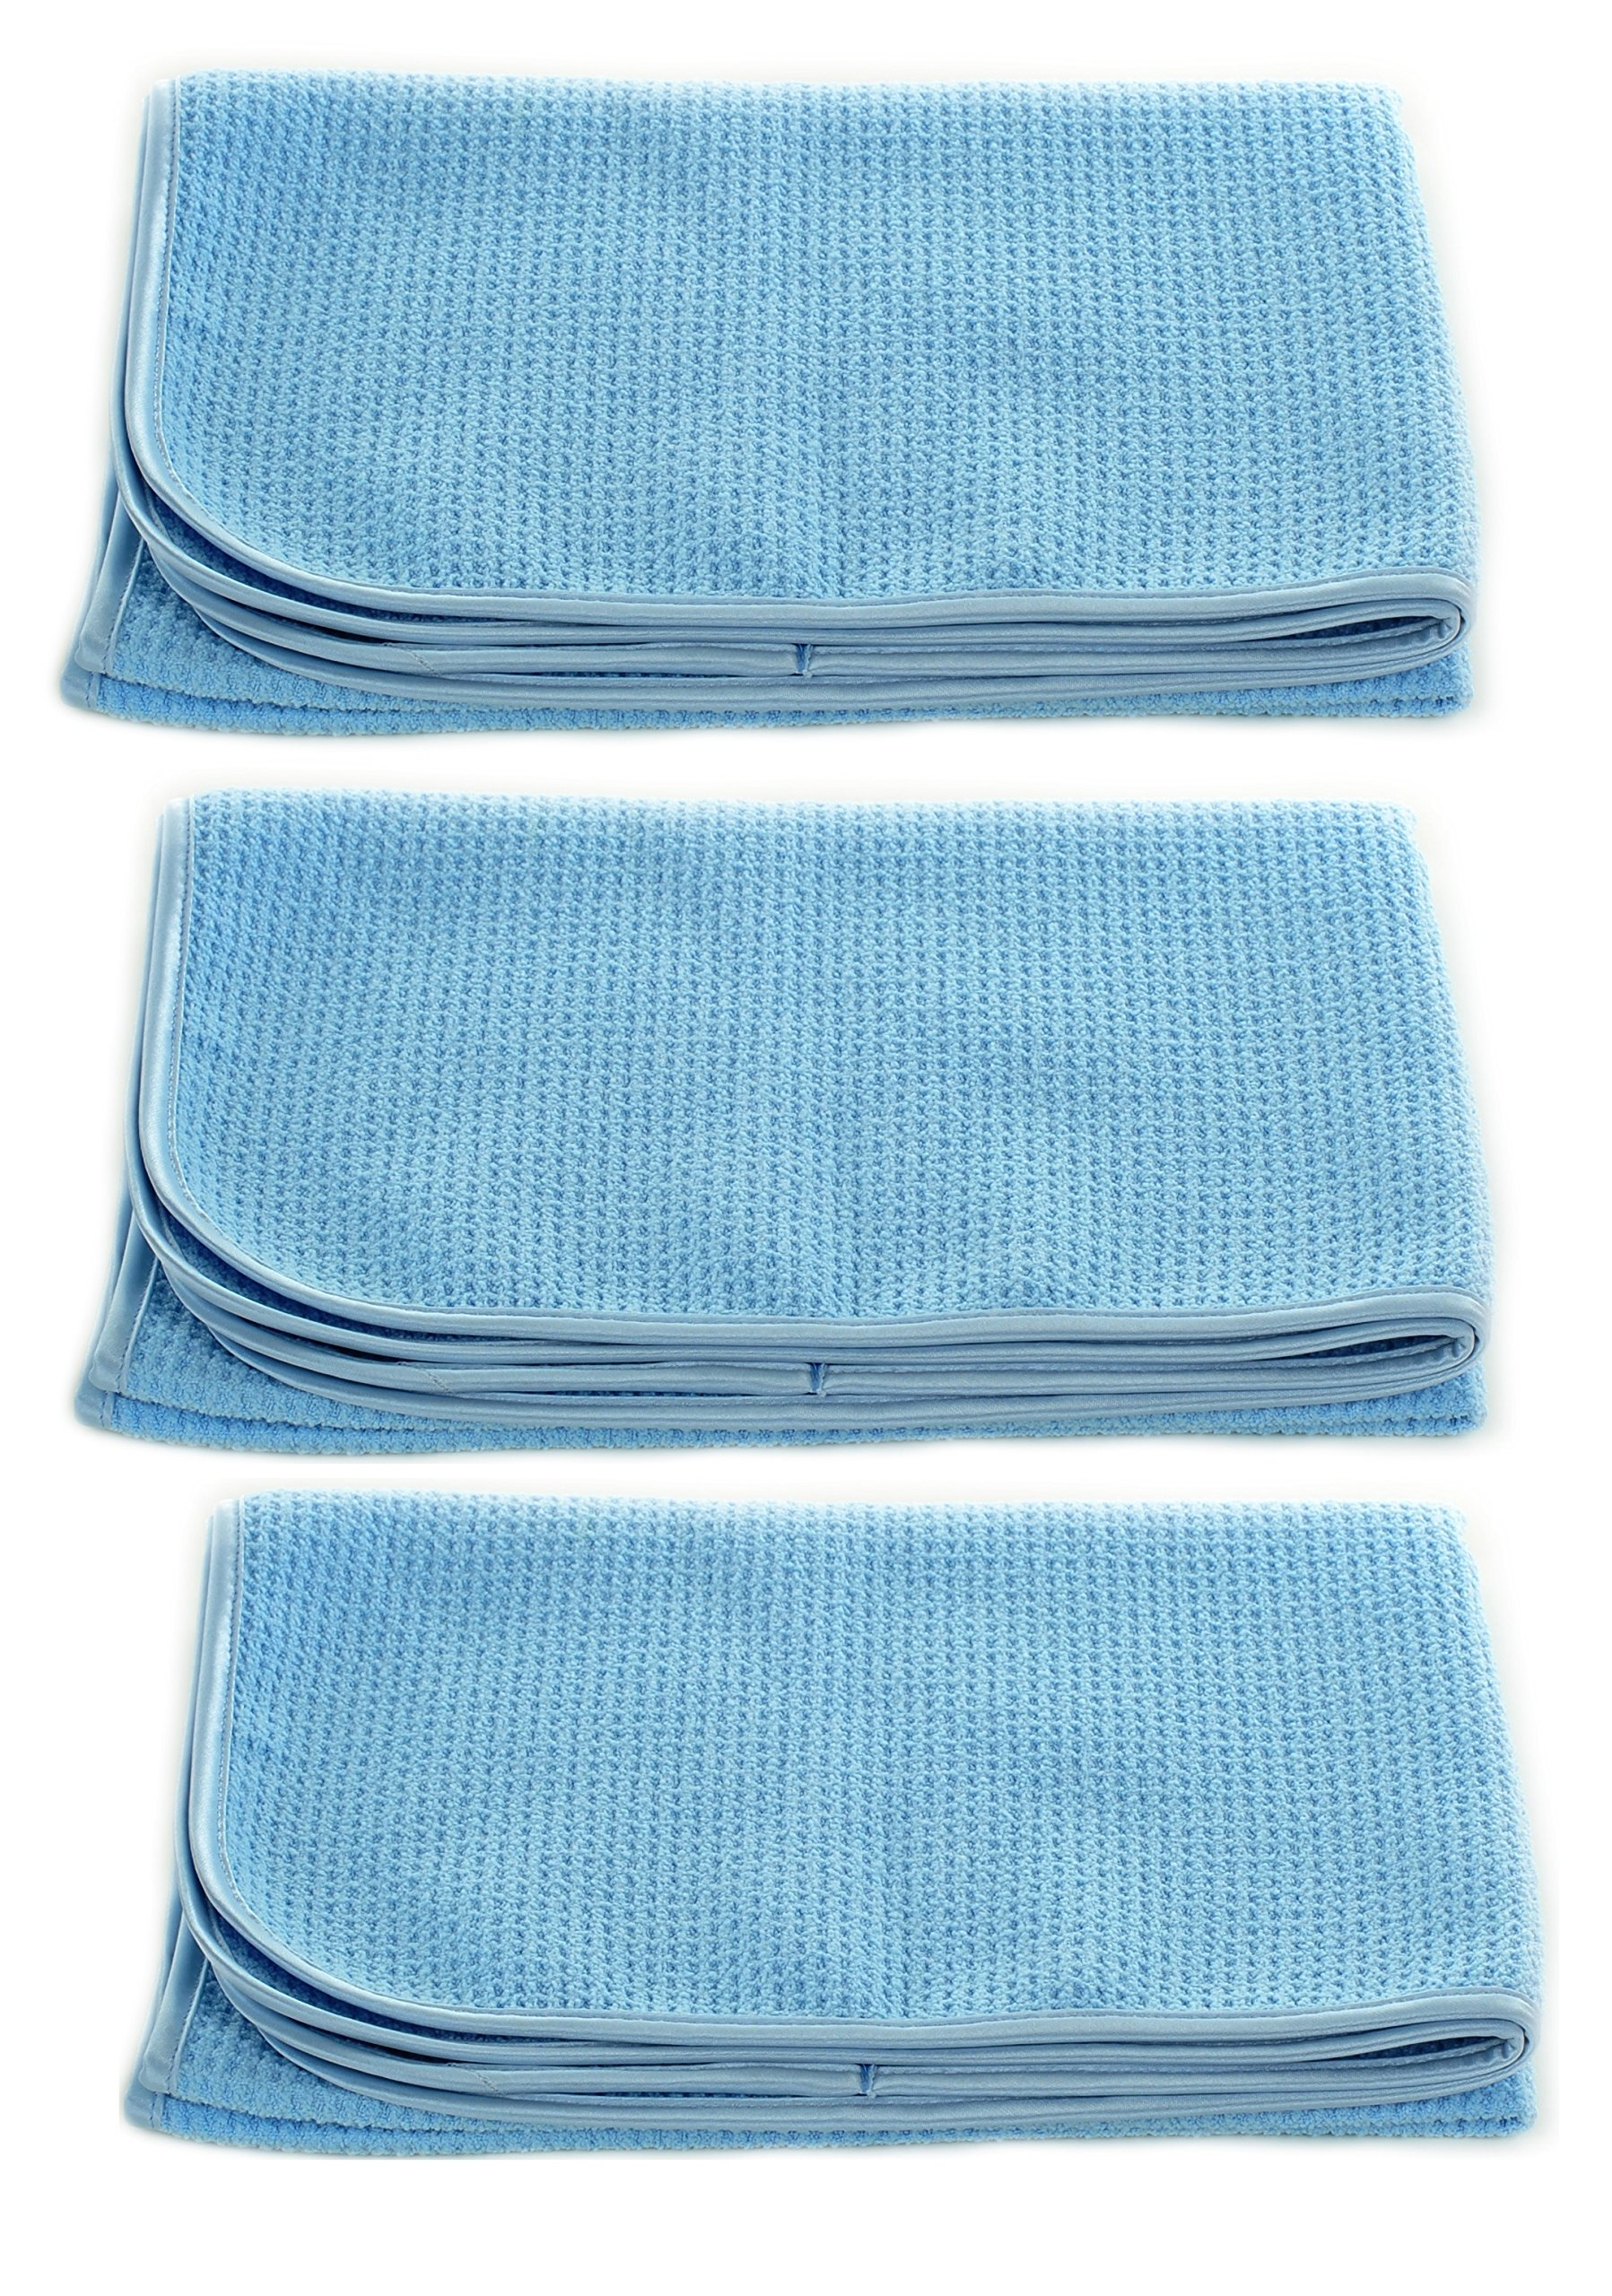 Real Clean Professional Grade Premium Ultra-Microfiber Extra Thirsty Big Blue Automotive Drying Towel 25''x 36'' Chemical and Water Safe Material (3 Pack)